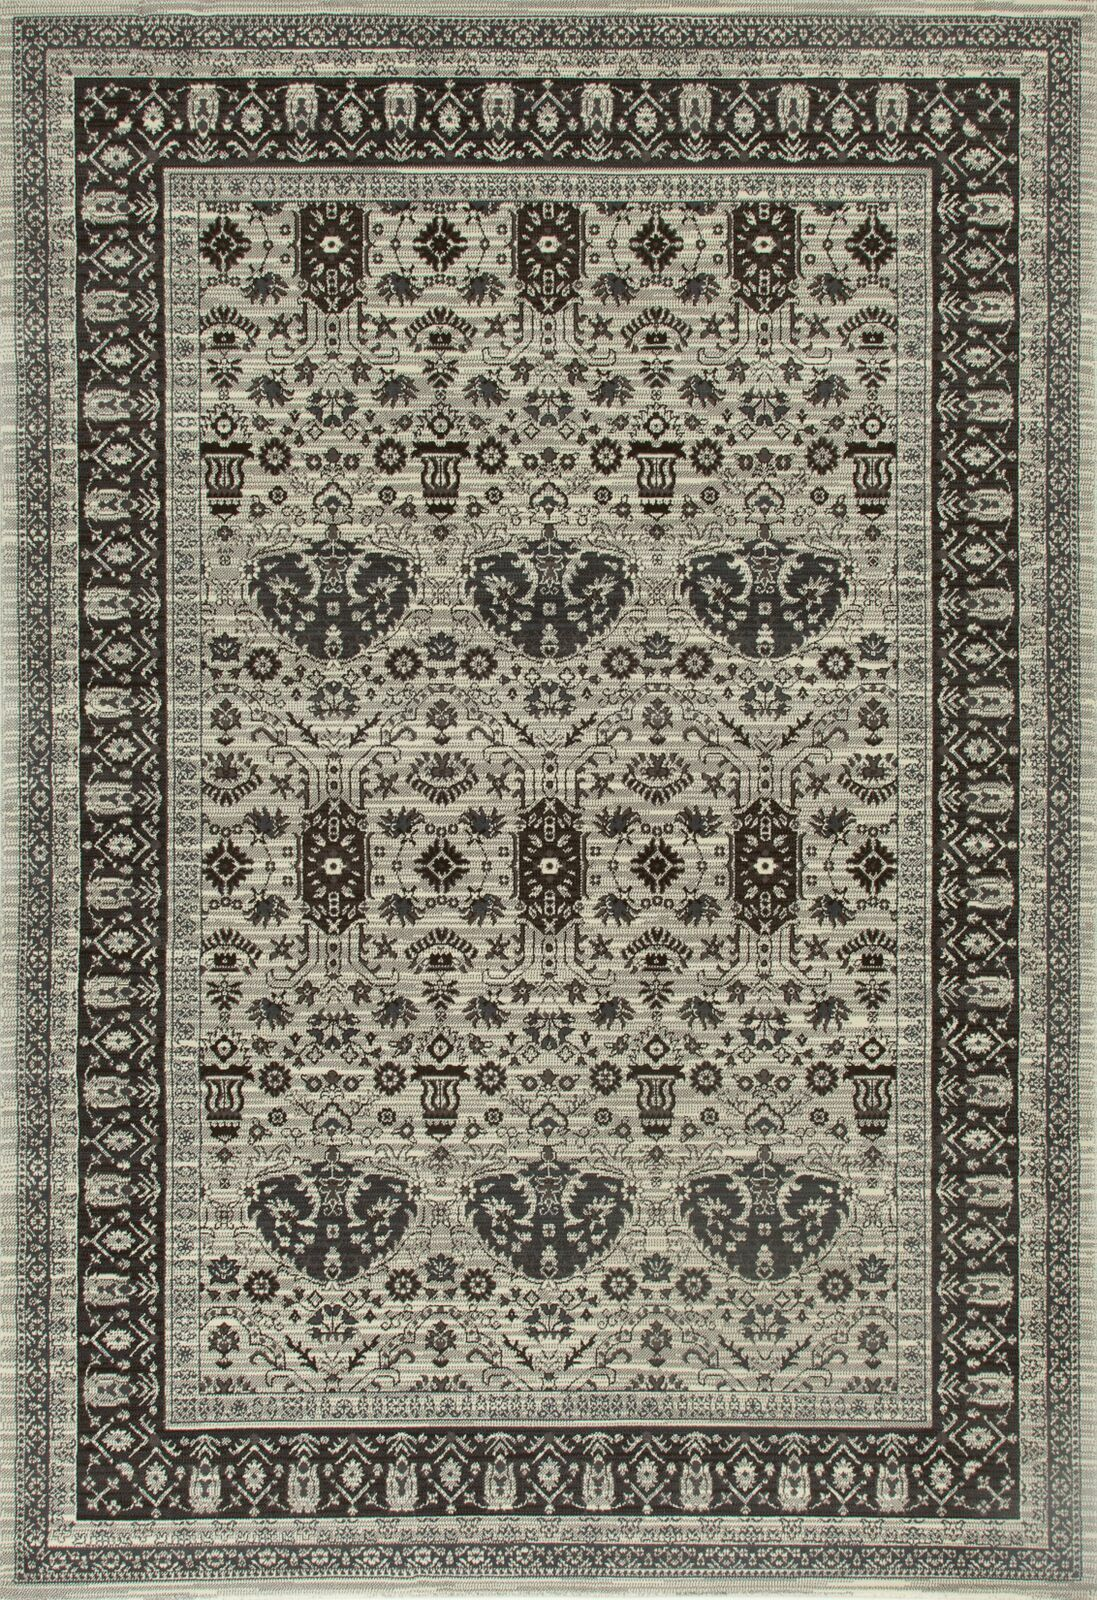 Channel Beige Area Rug Rug Size: 3'11 x 5'11